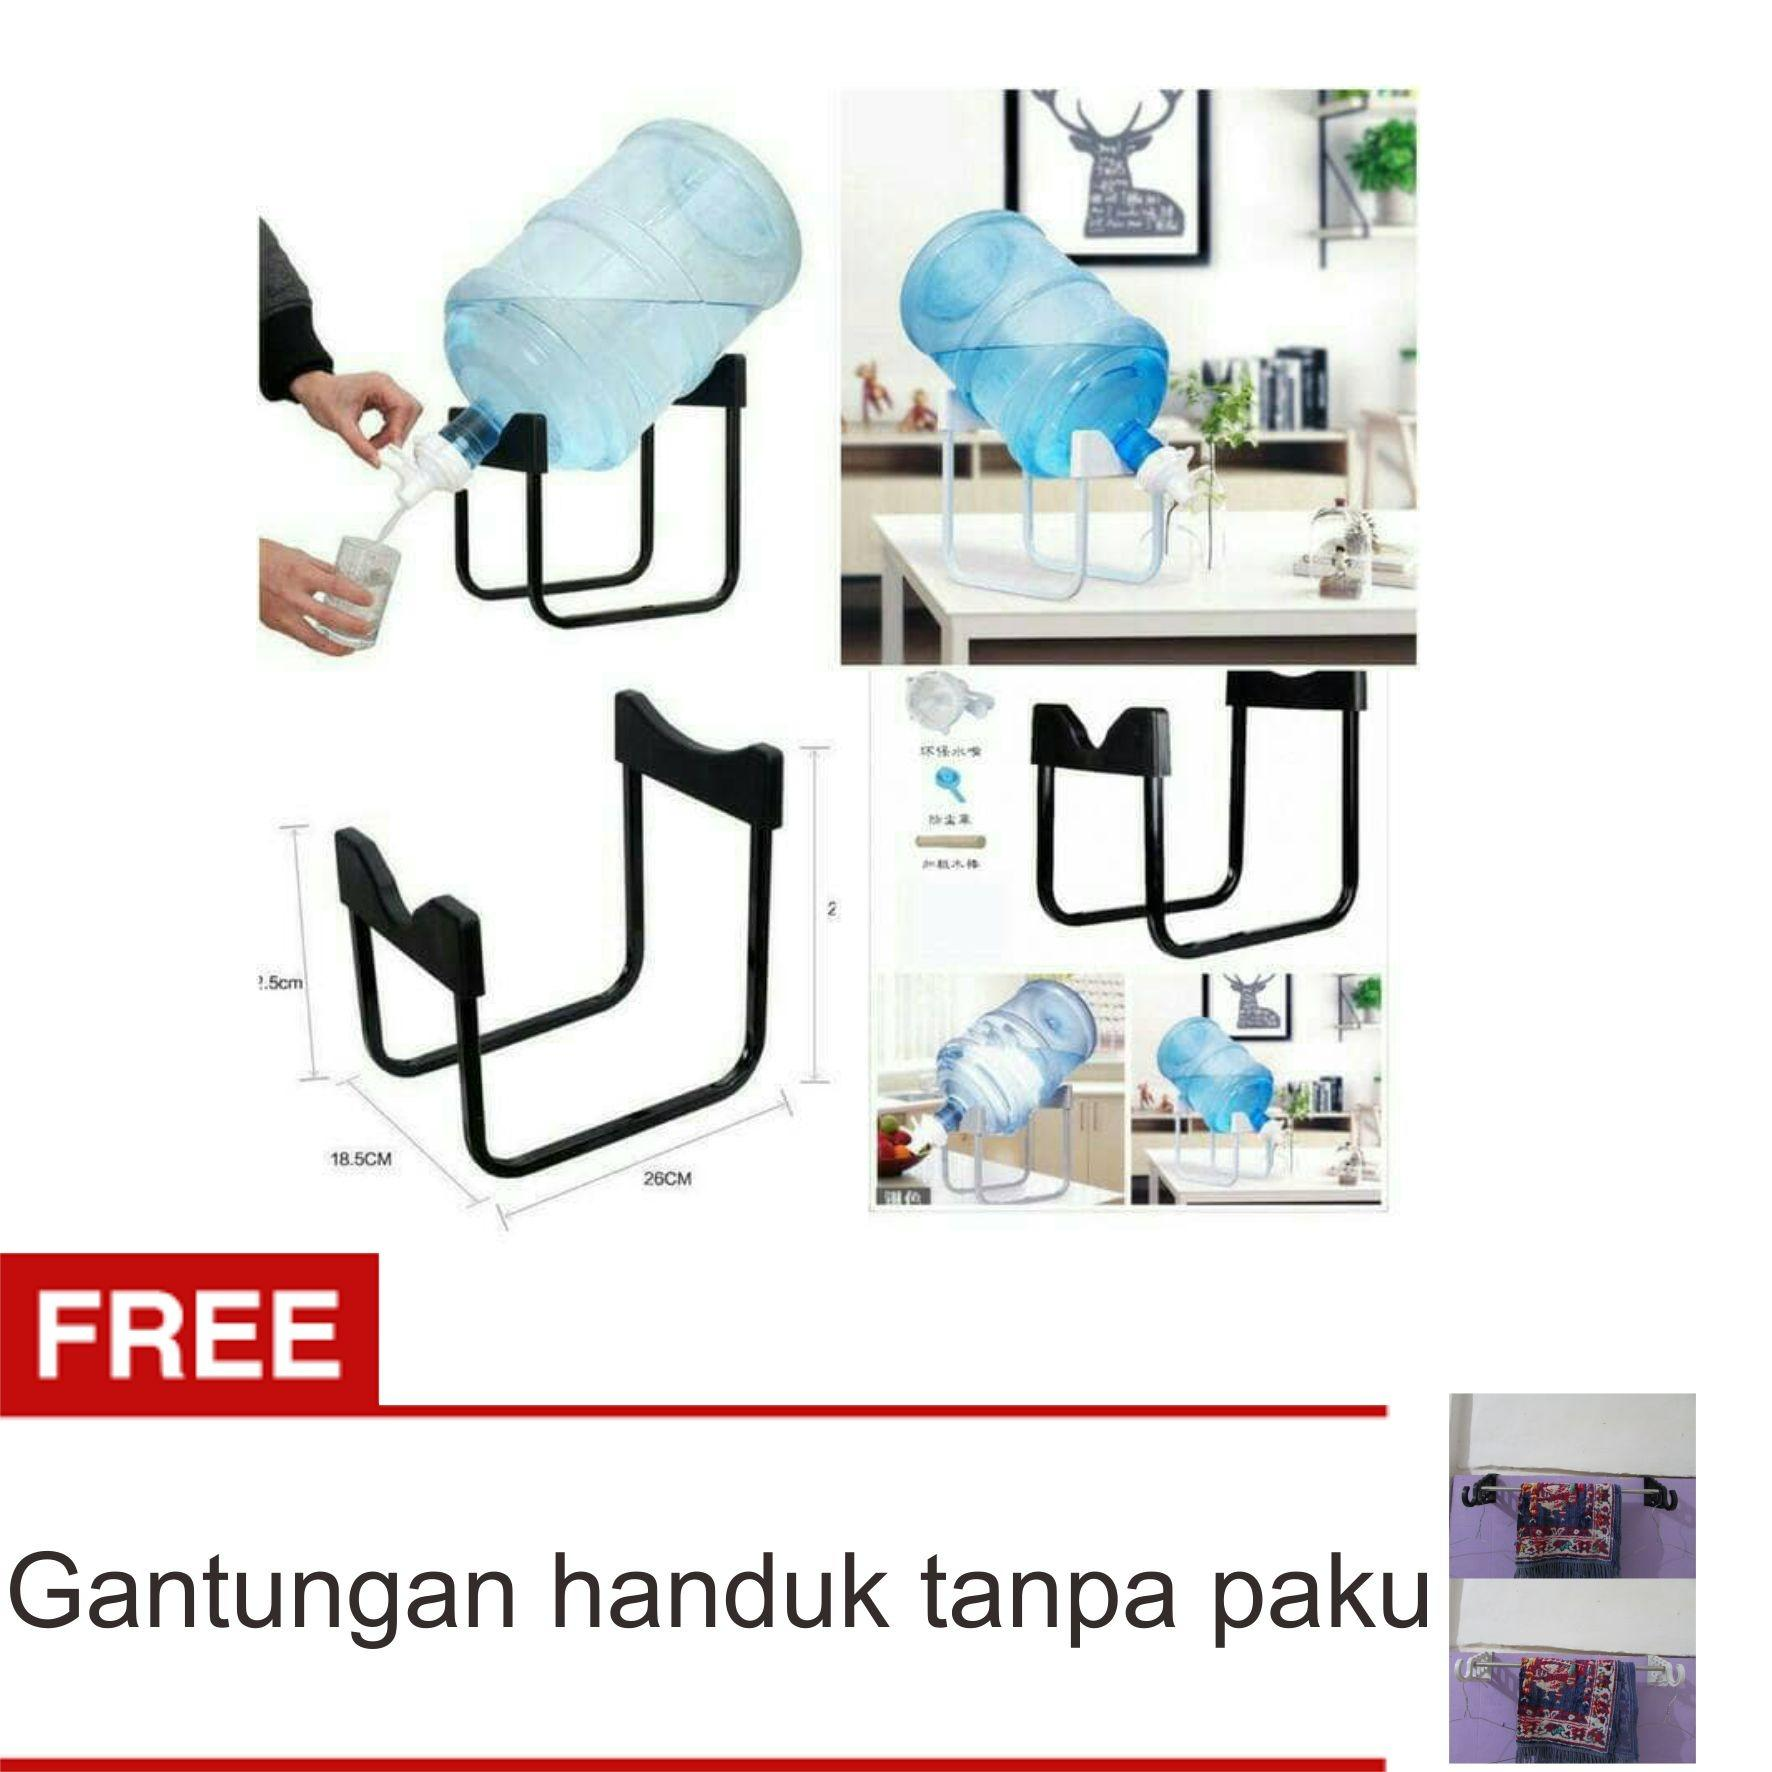 Lanjarjaya Rak Galon Tatakan Galon + Kran Air Galon / Dispenser Air Galon / Dispenser Minuman / Tatakan Aqua / Rak Besi Warna Random + Gantungan Handuk Tanpa Paku